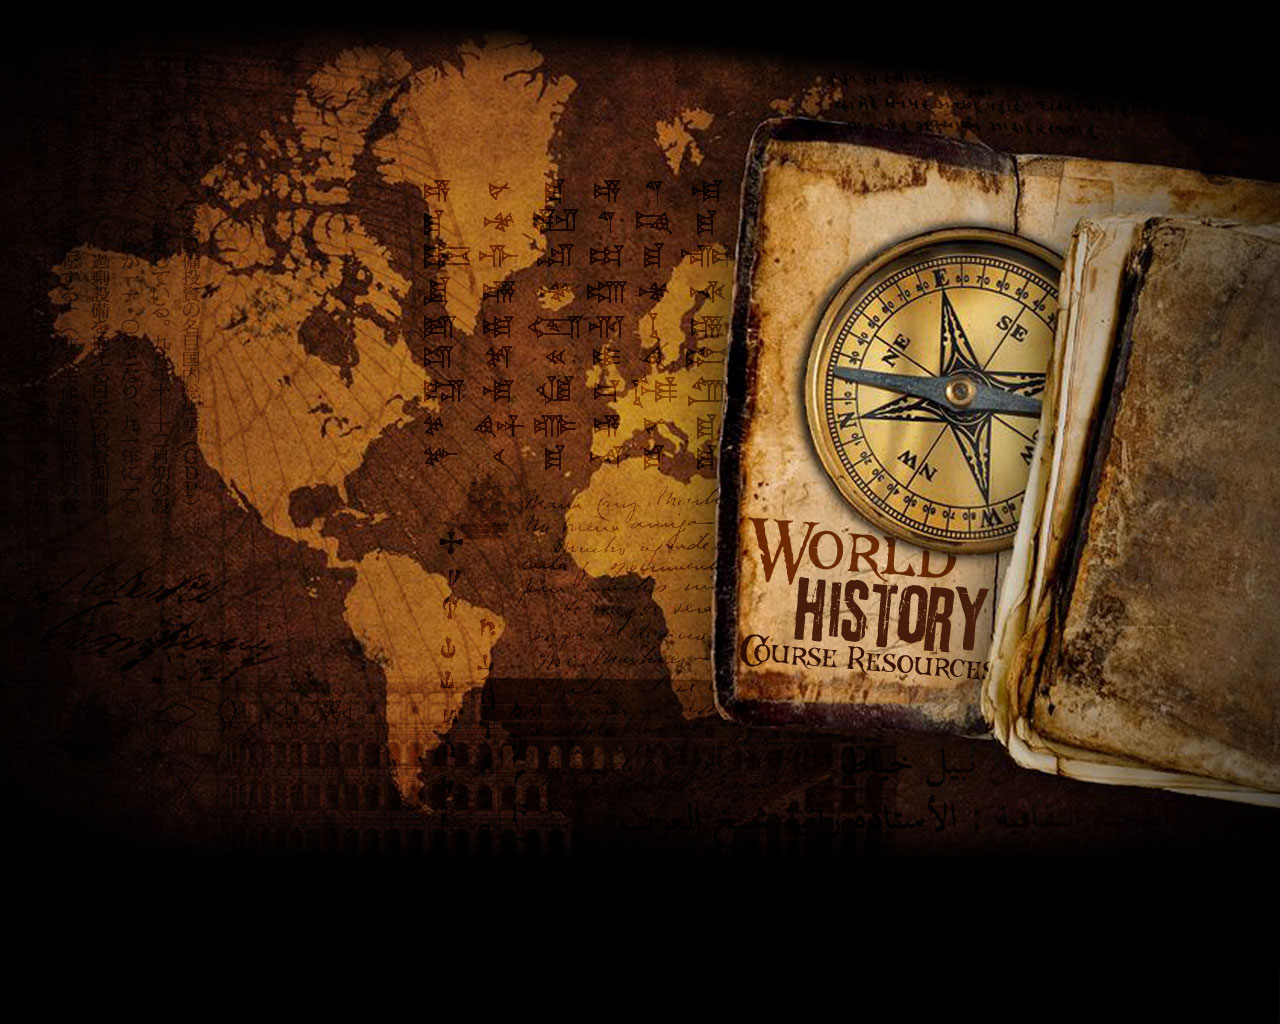 World History Wallpaper - WallpaperSafari